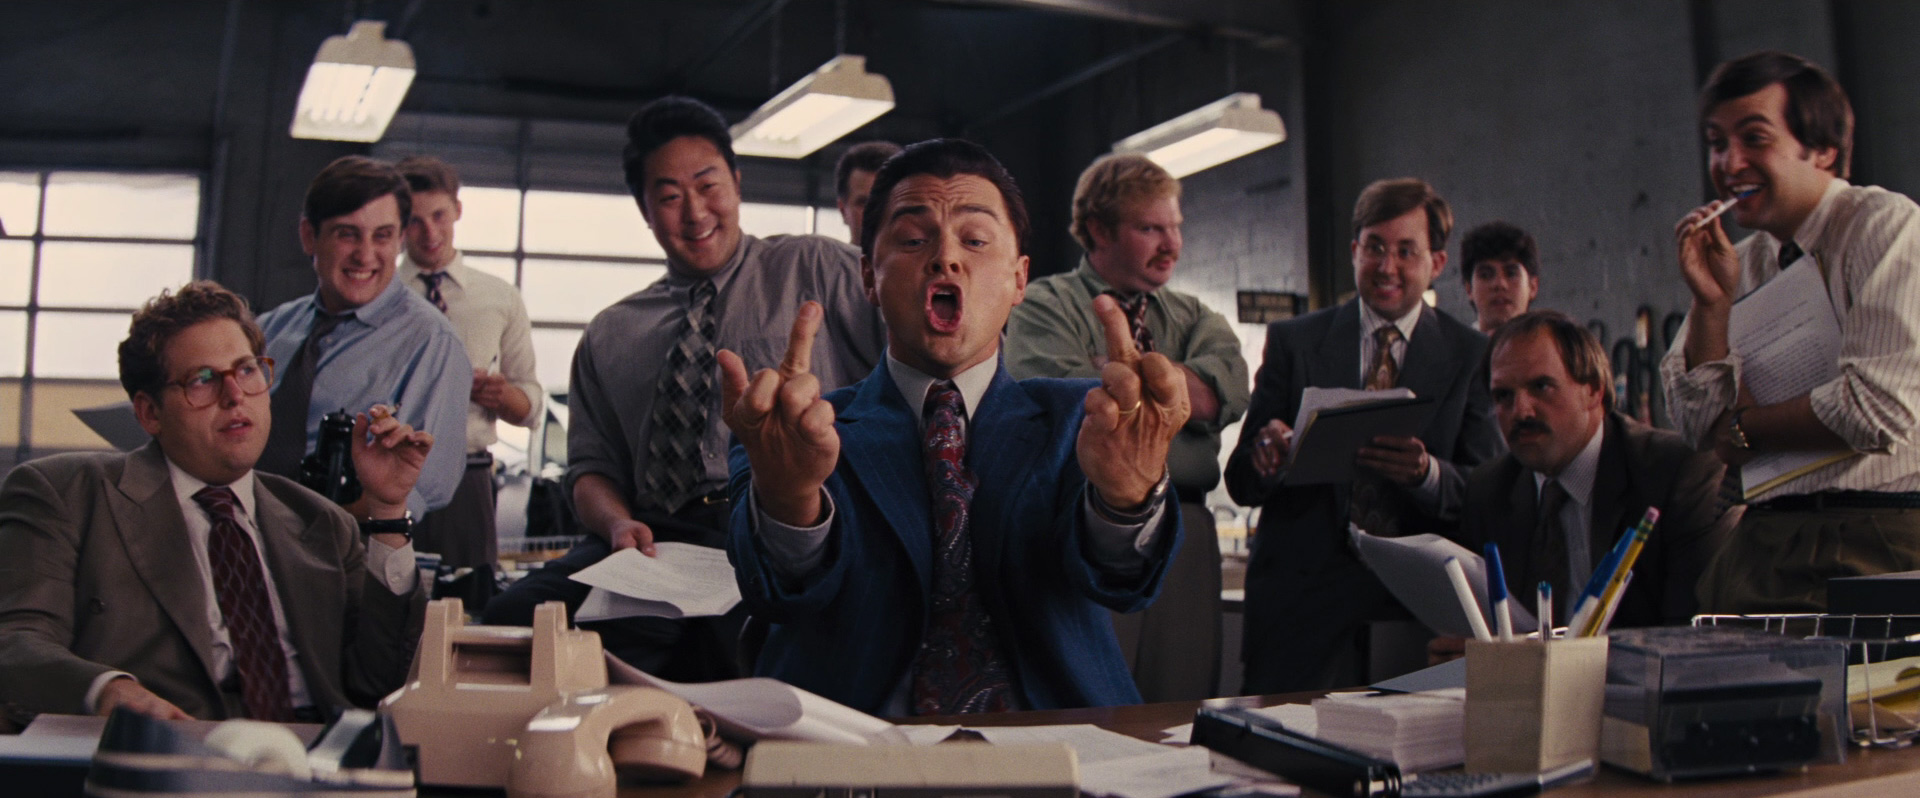 The Wolf Of Wall Street 0171 moreover The Wolf Of Wall Street 0034 furthermore On the waterfront furthermore The Wolf Of Wall Street 0534 as well Tv Dvd  bo 1210. on golden globe award for best screenplay motion picture